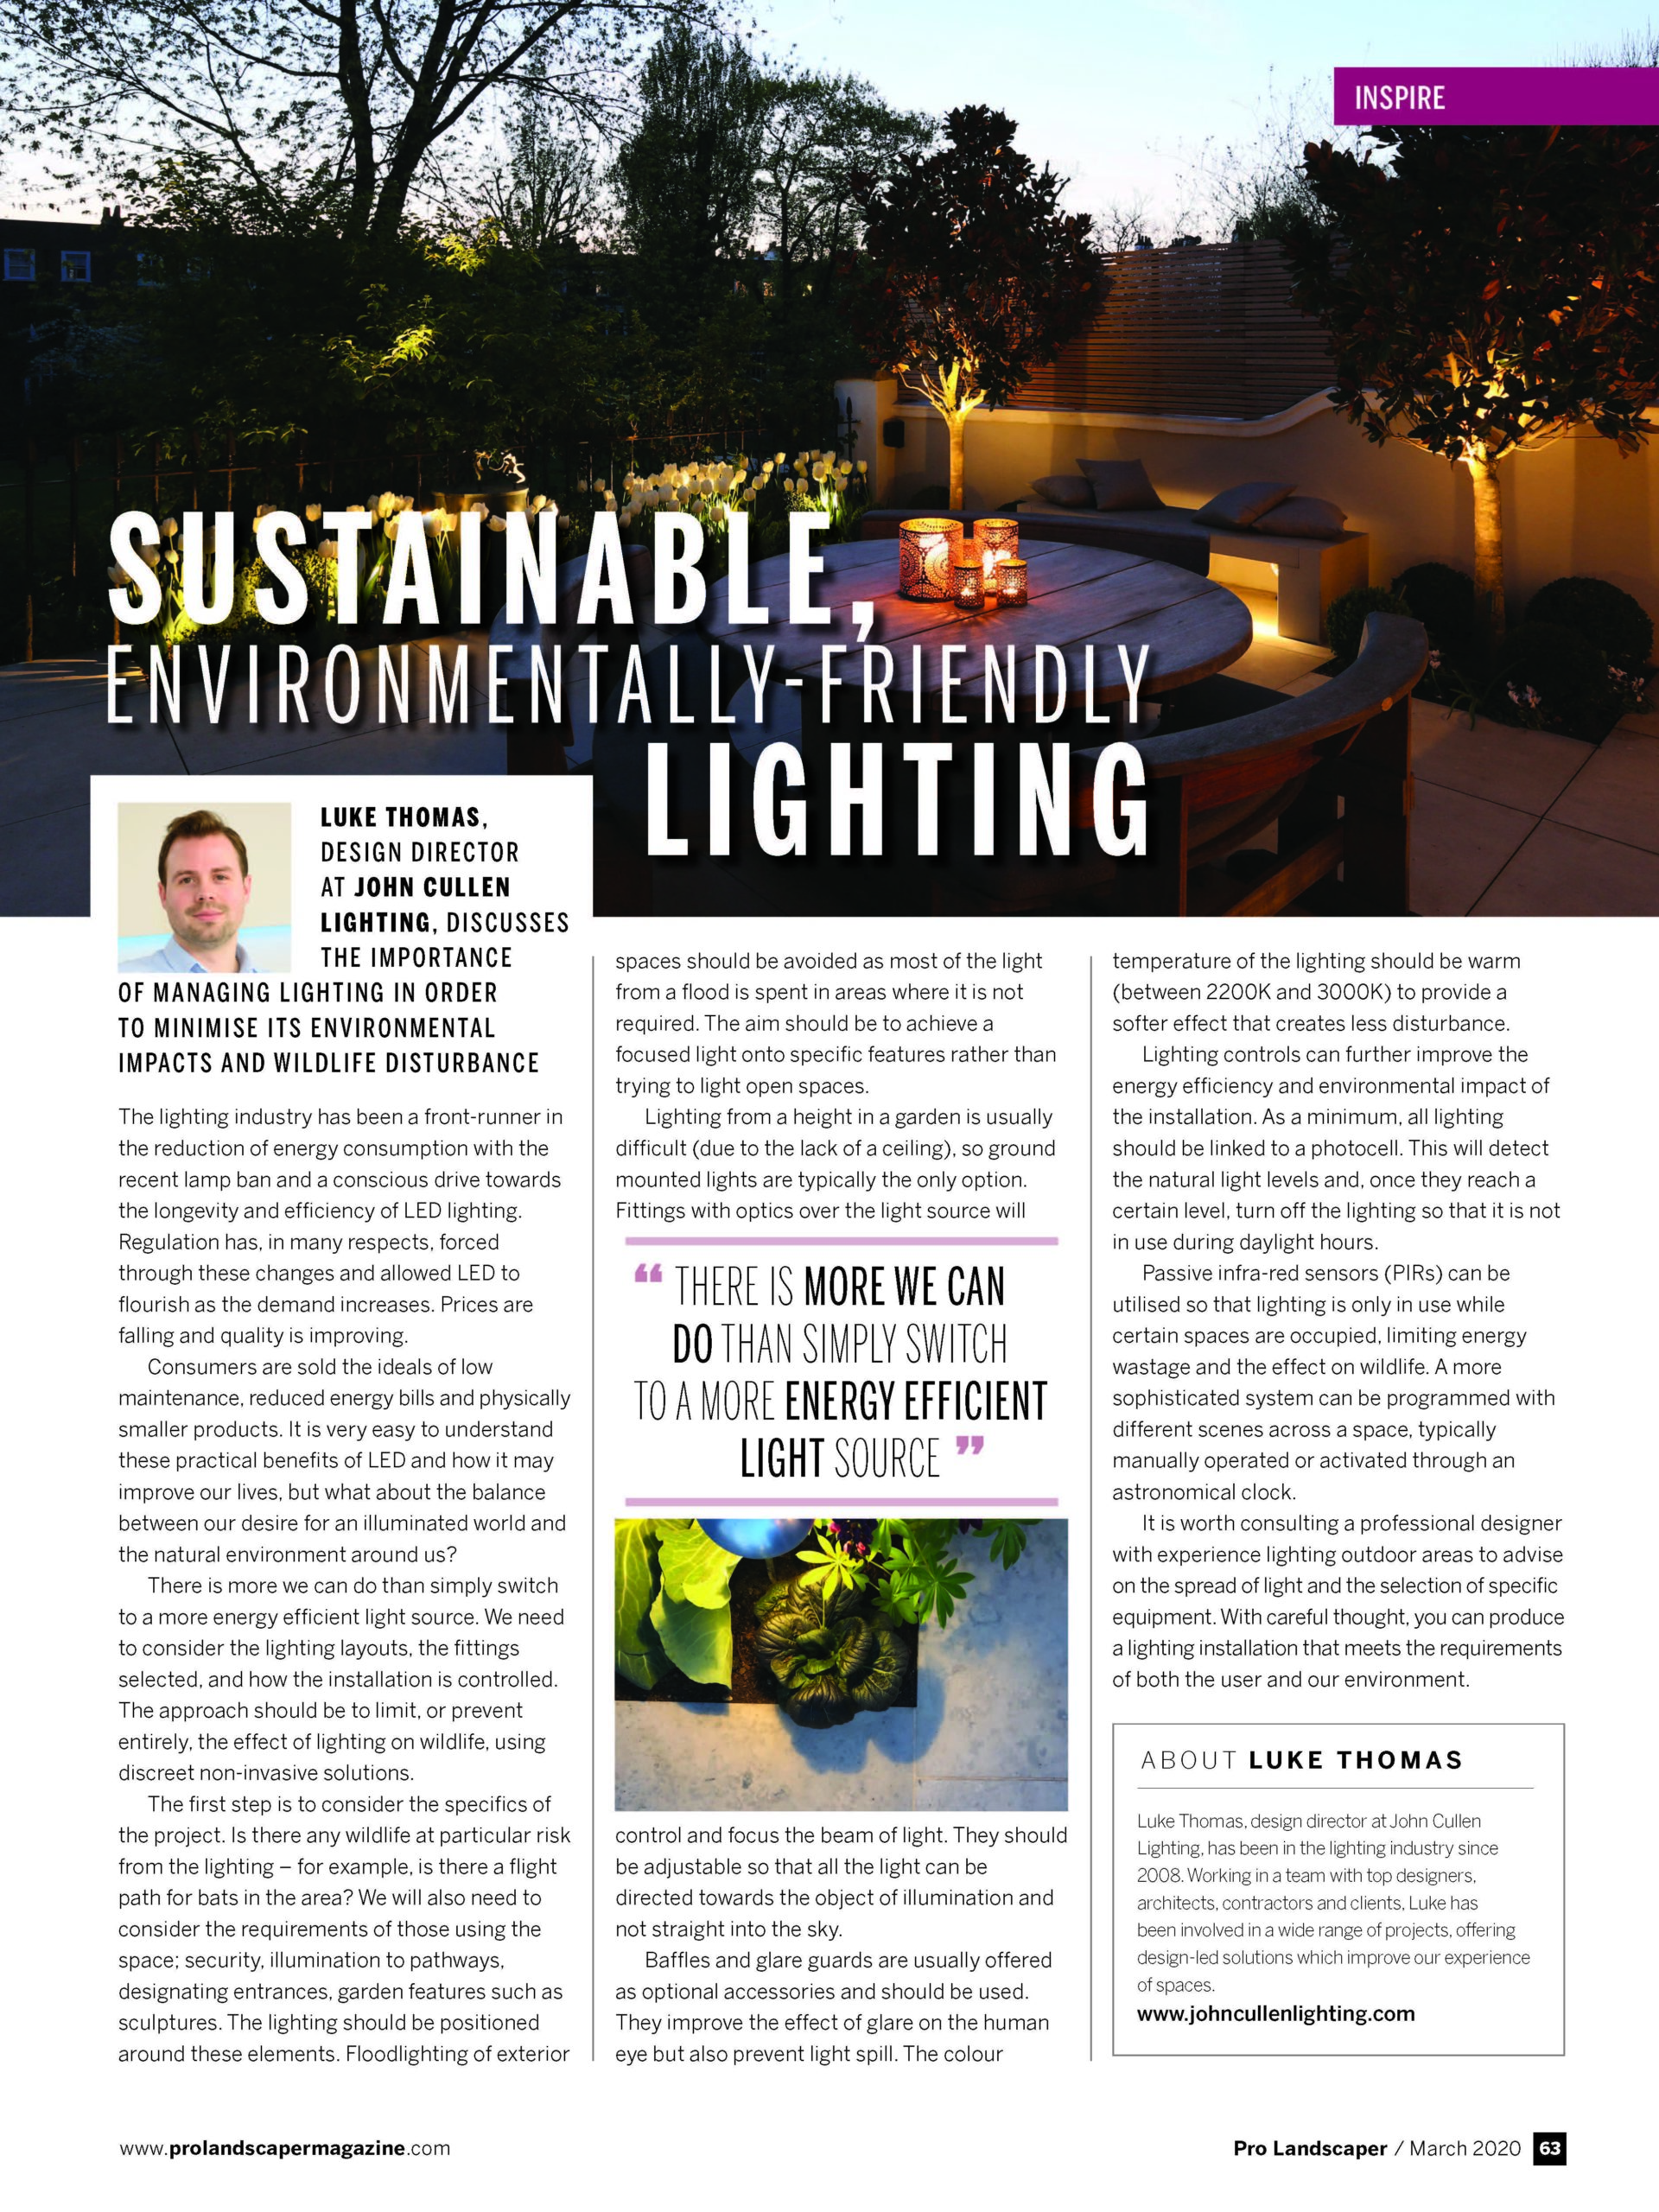 Sustainable Lighting Tips with Pro Landscaper